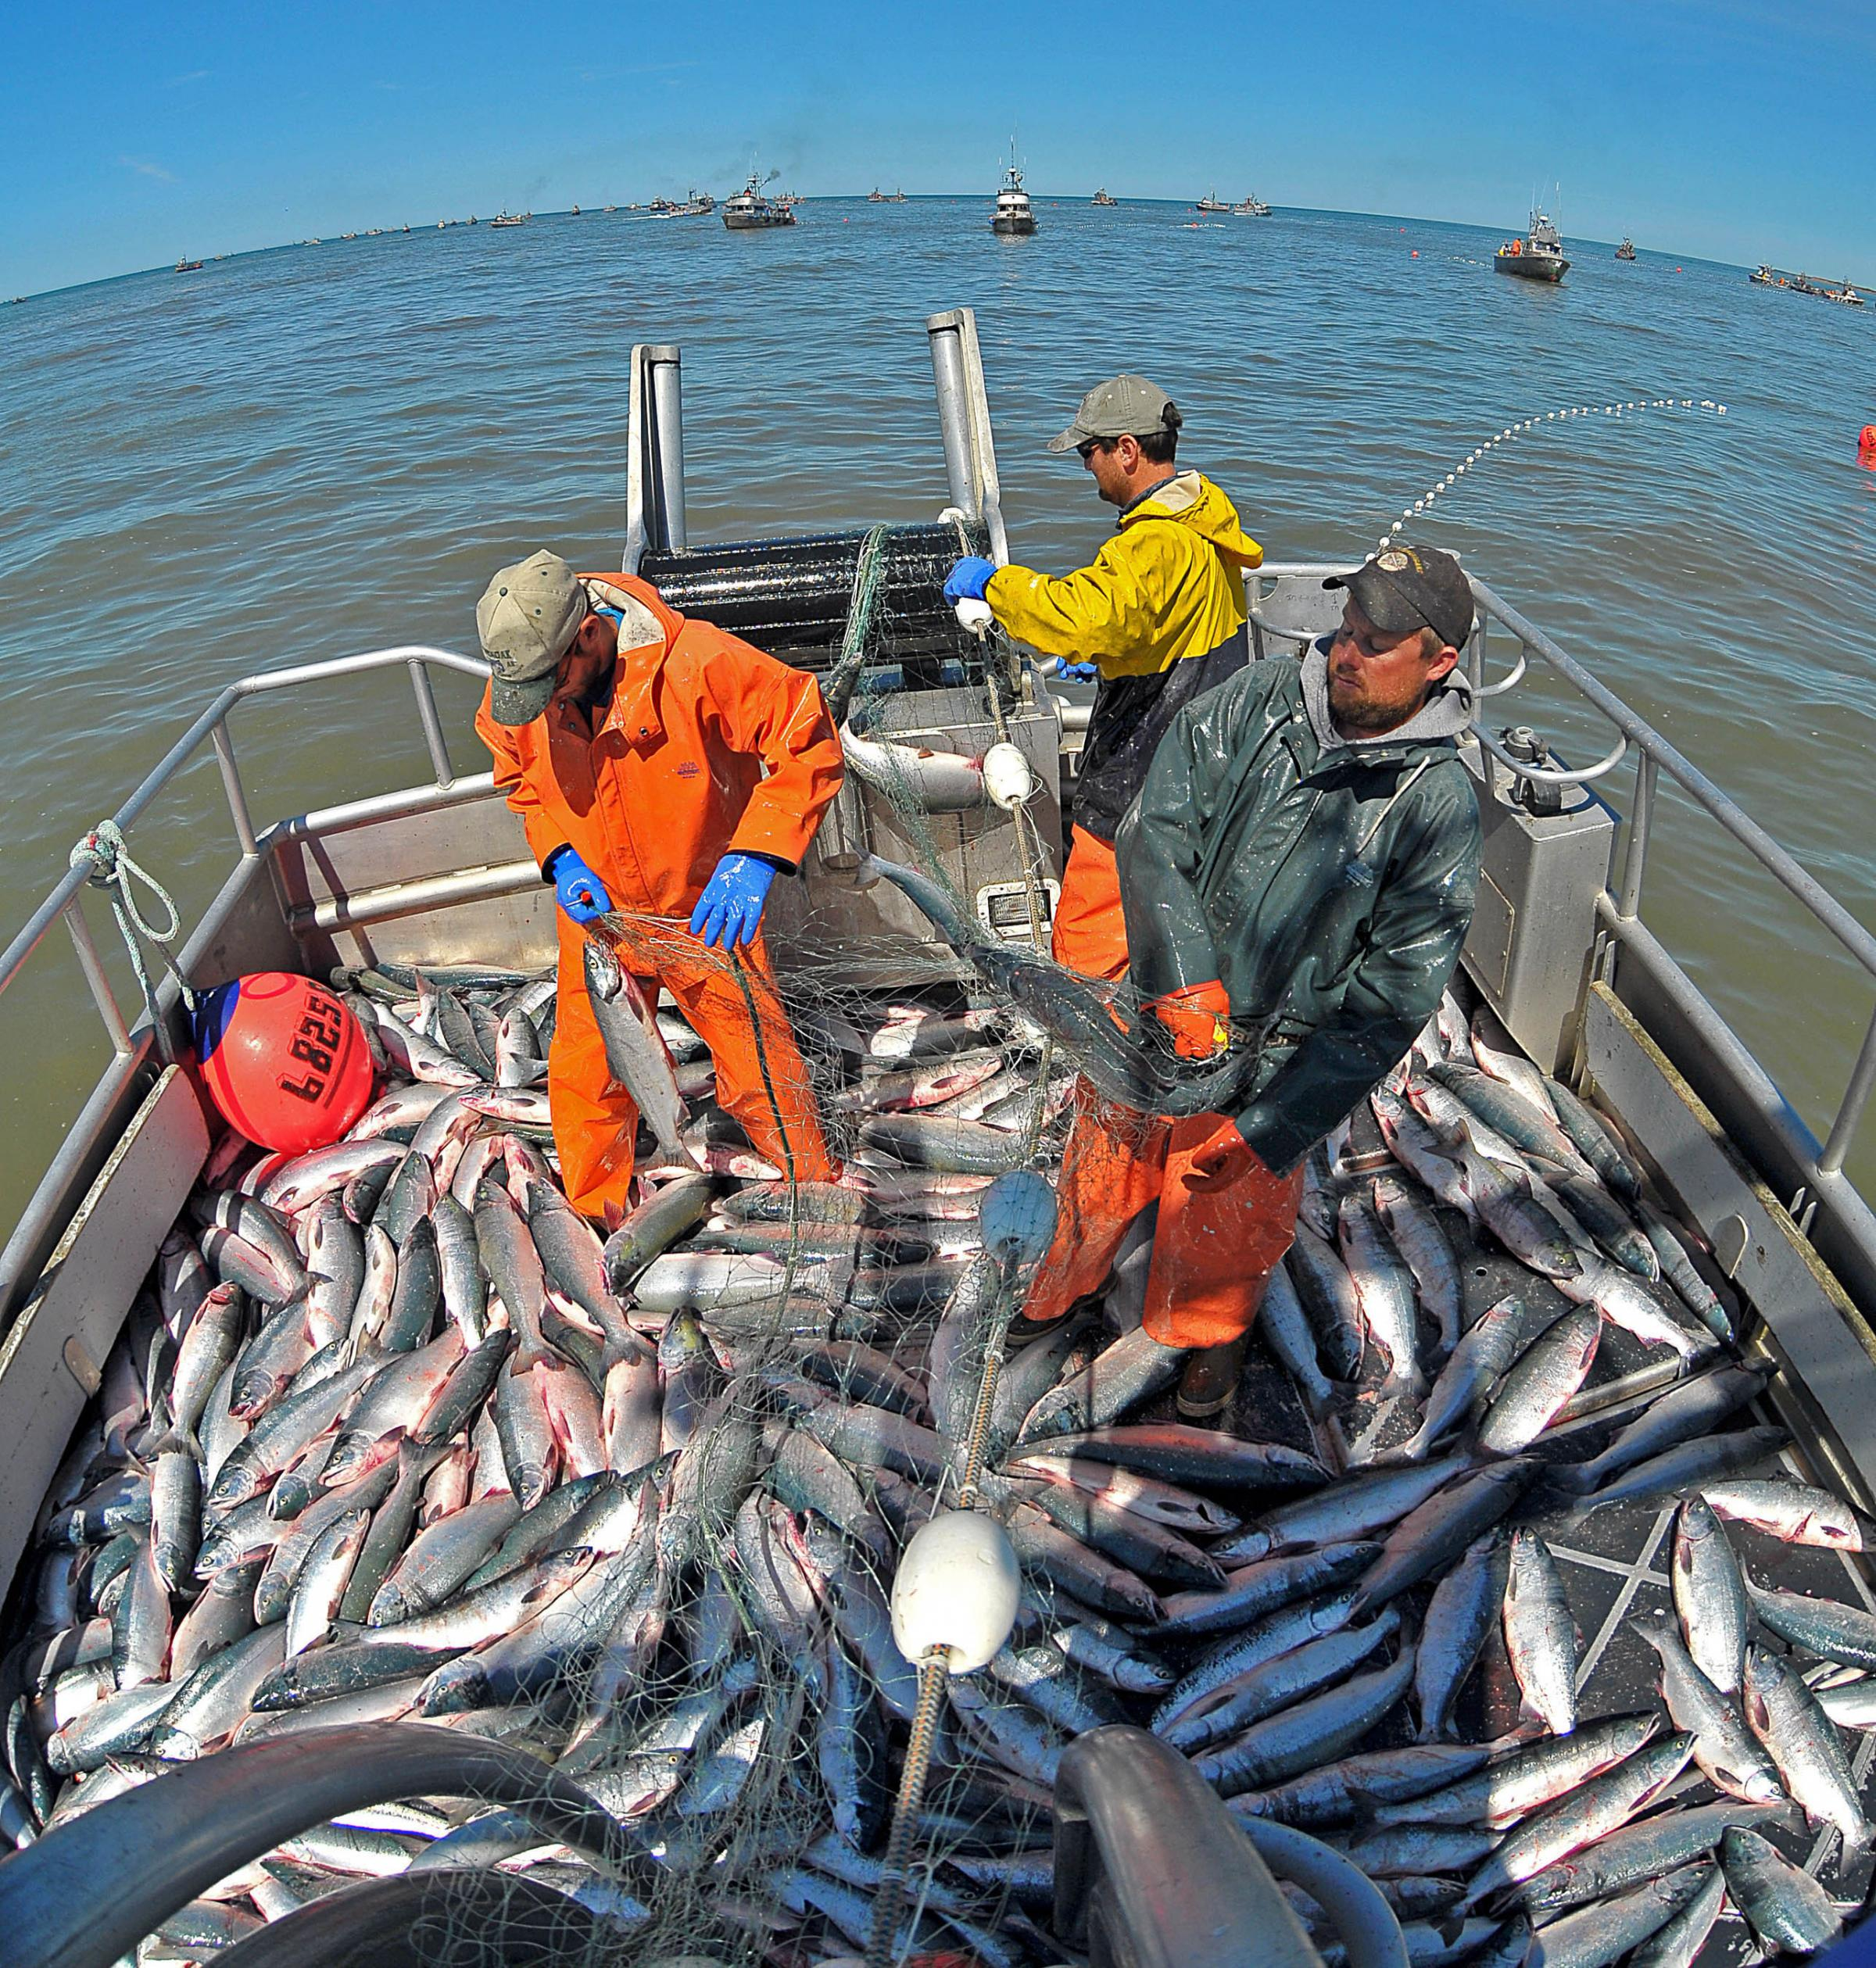 Deadliest job in america fishing wusf news Fish for jobs